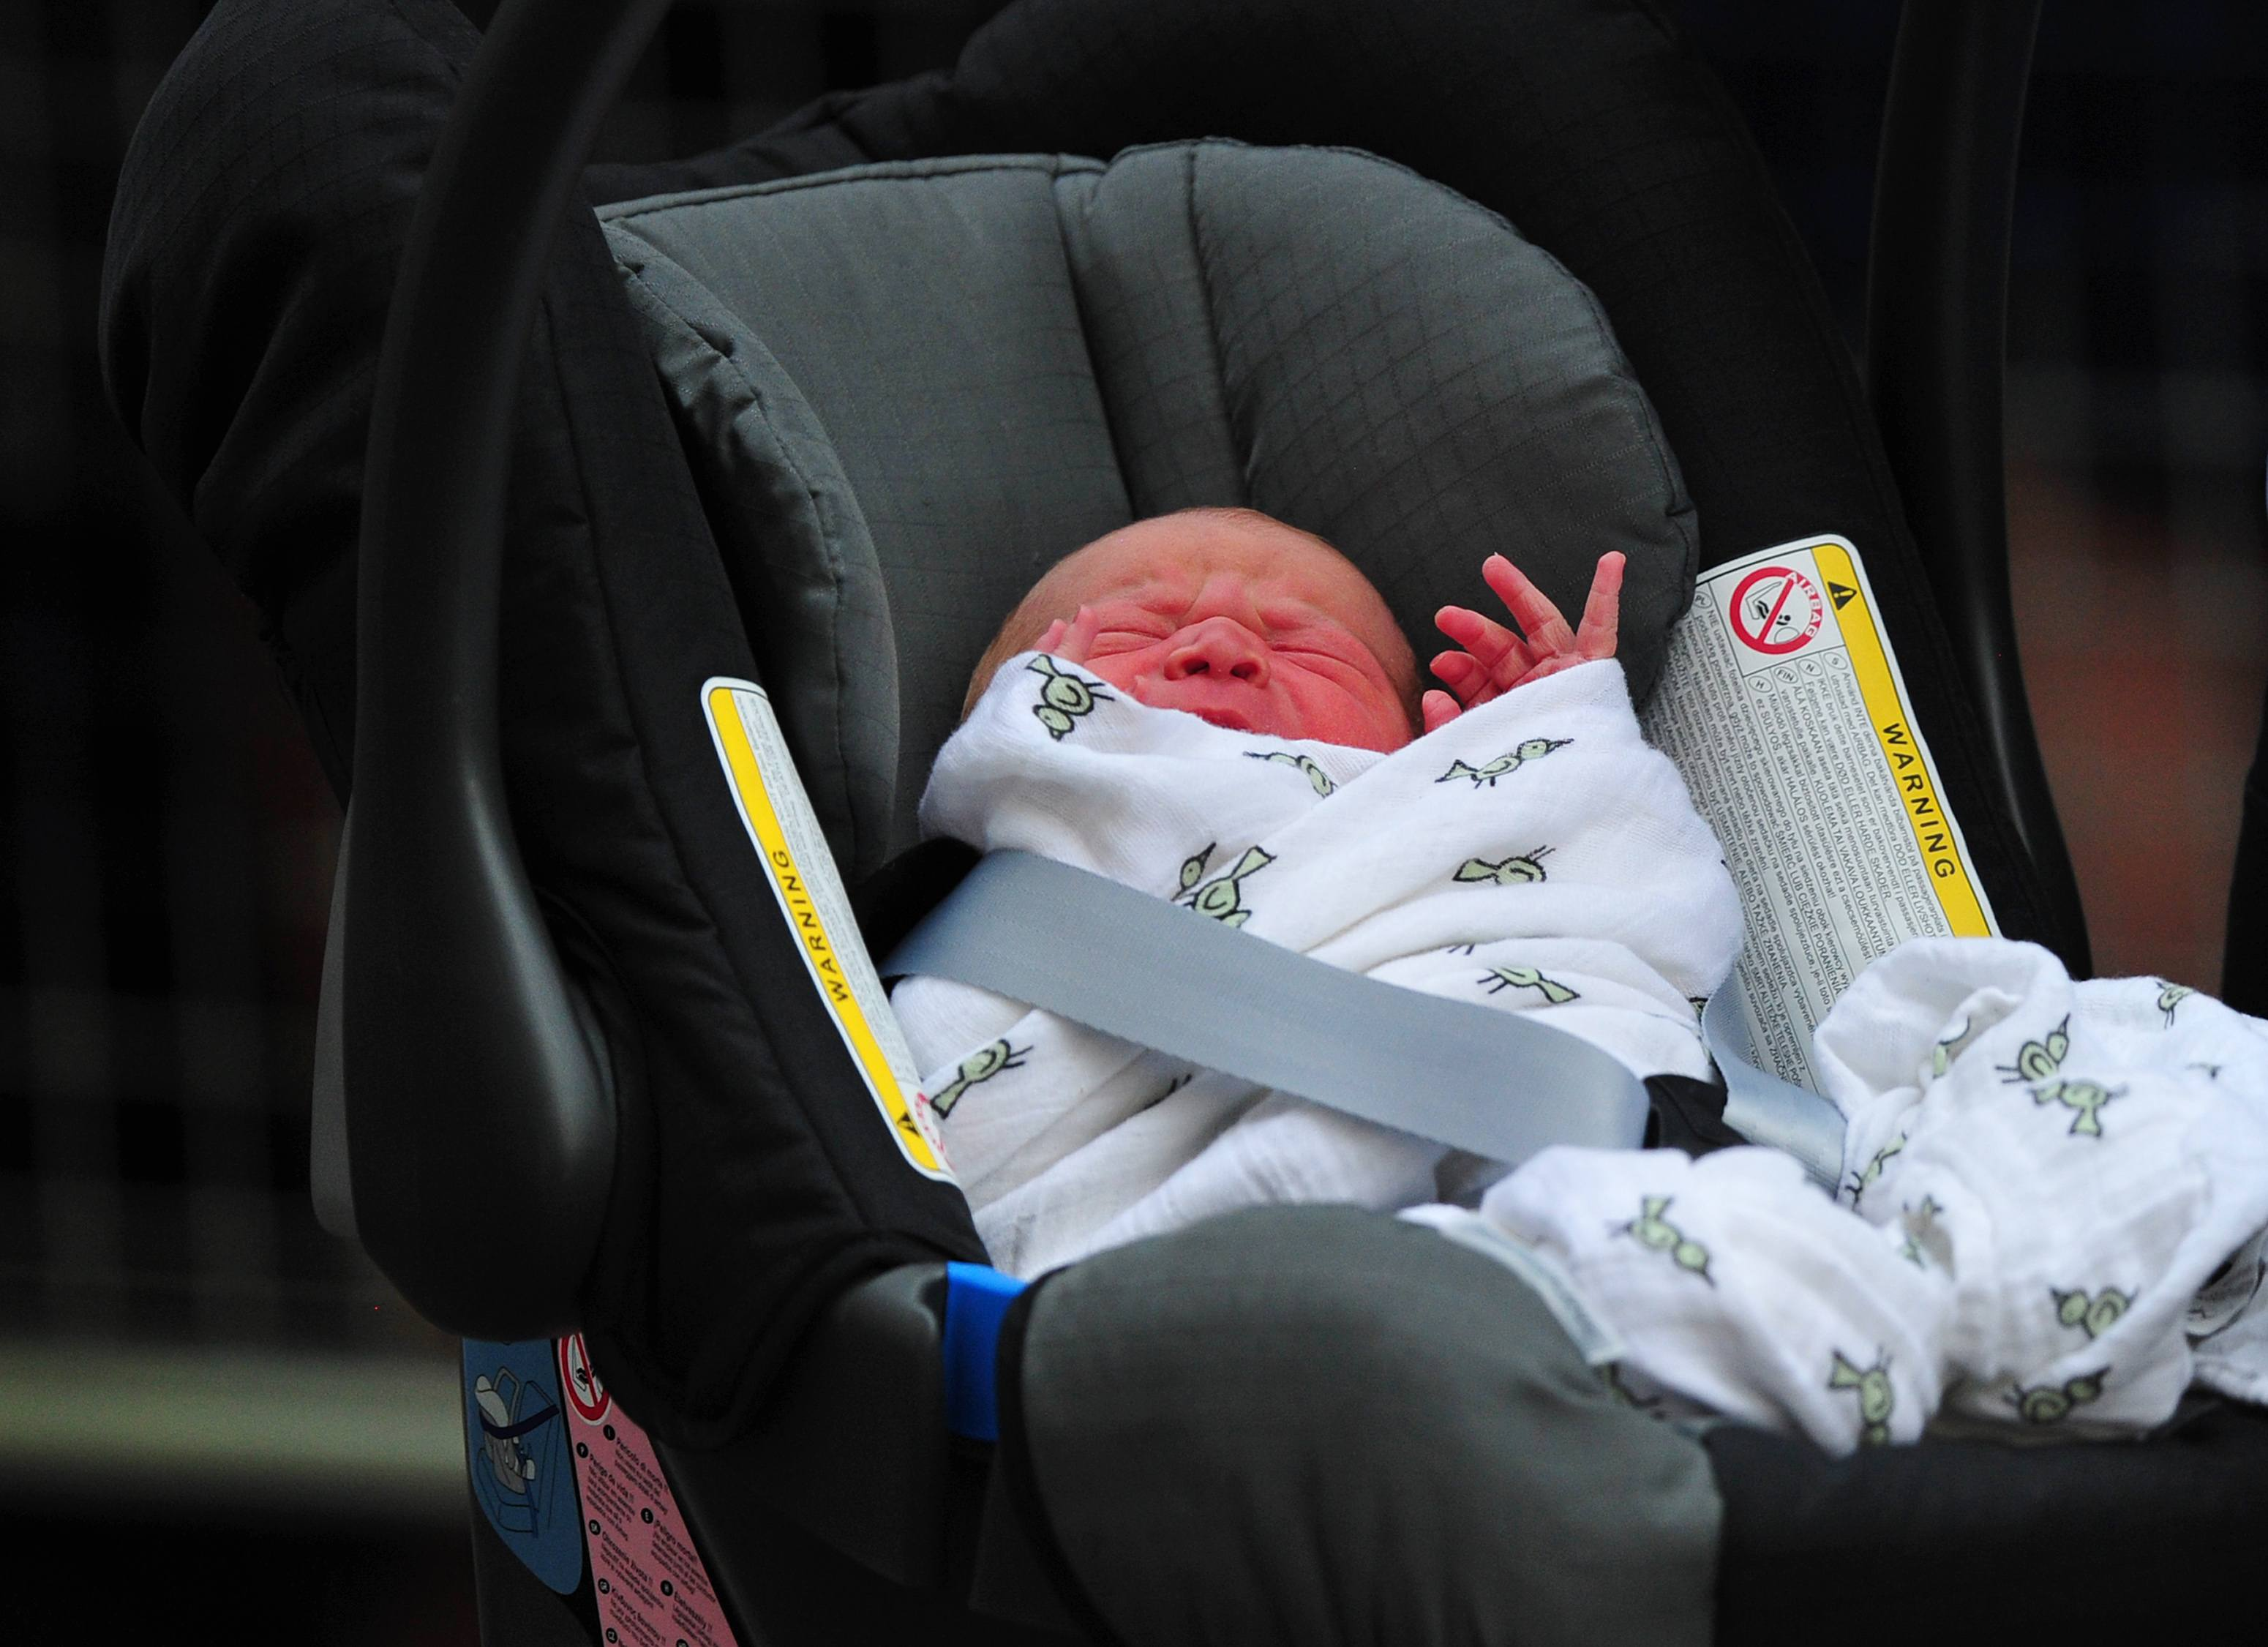 Prince George in carseat